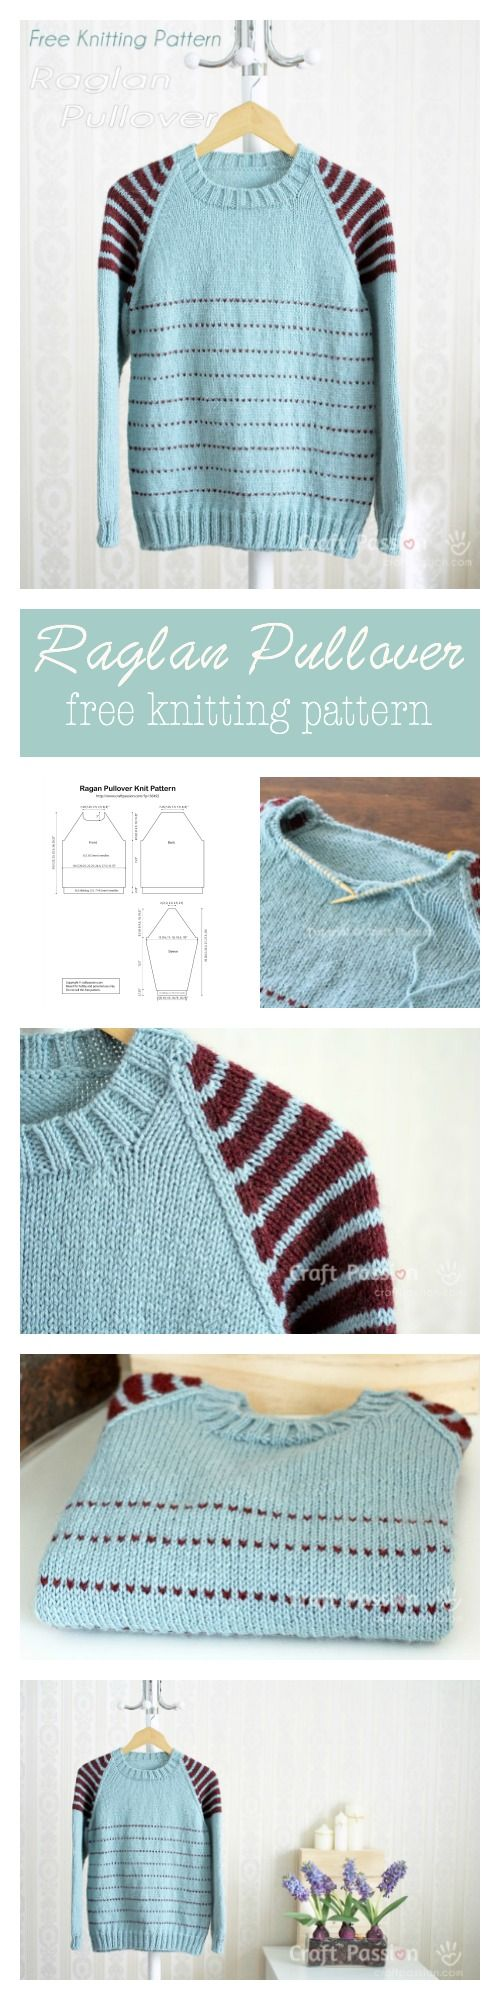 Raglan Pullover - Free Knitting Pattern | Pinterest | Knitting ...